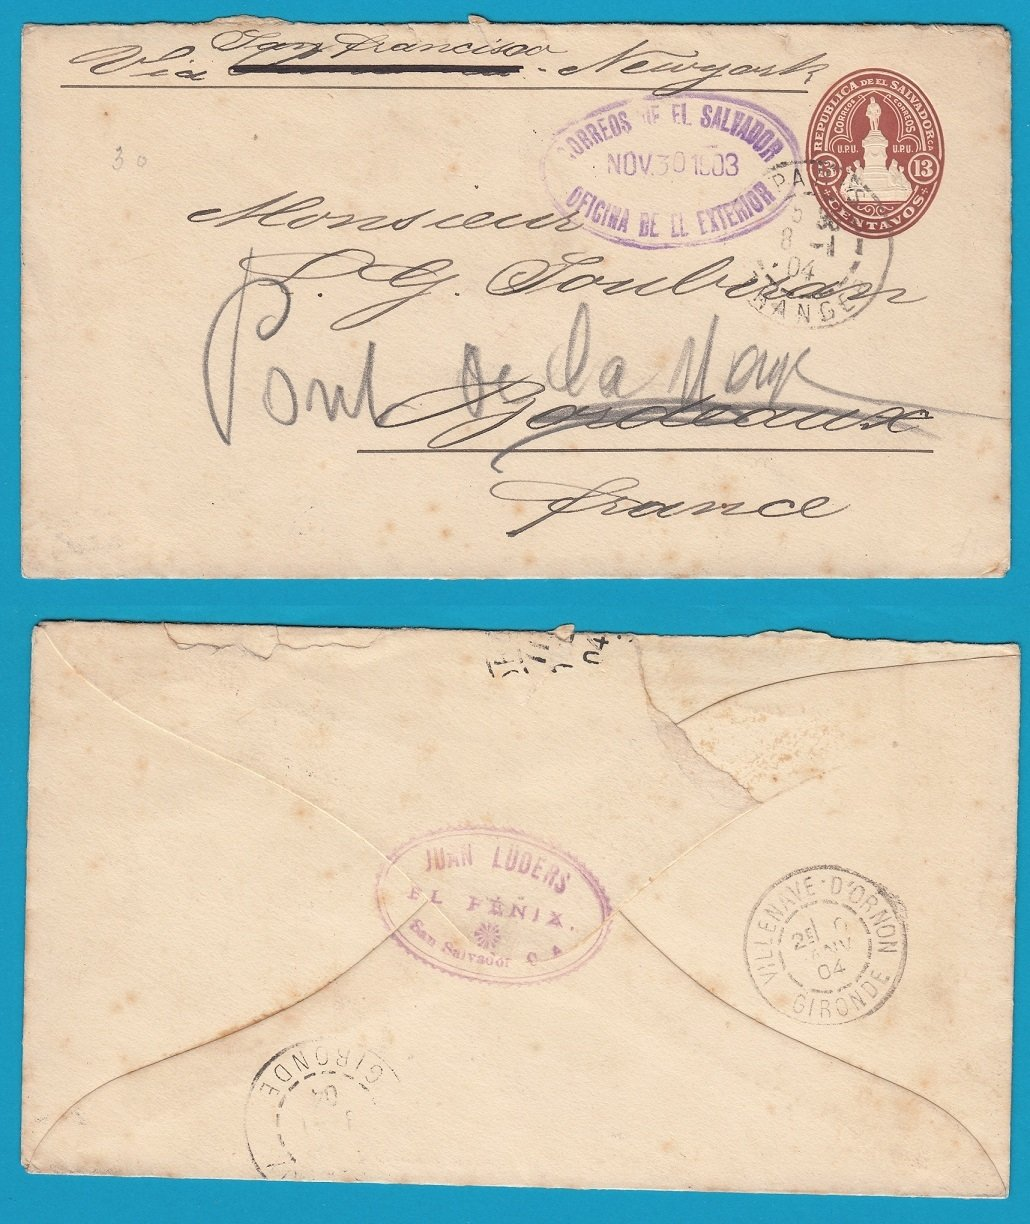 EL SALVADOR postal envelop 1903 San Salvador to France